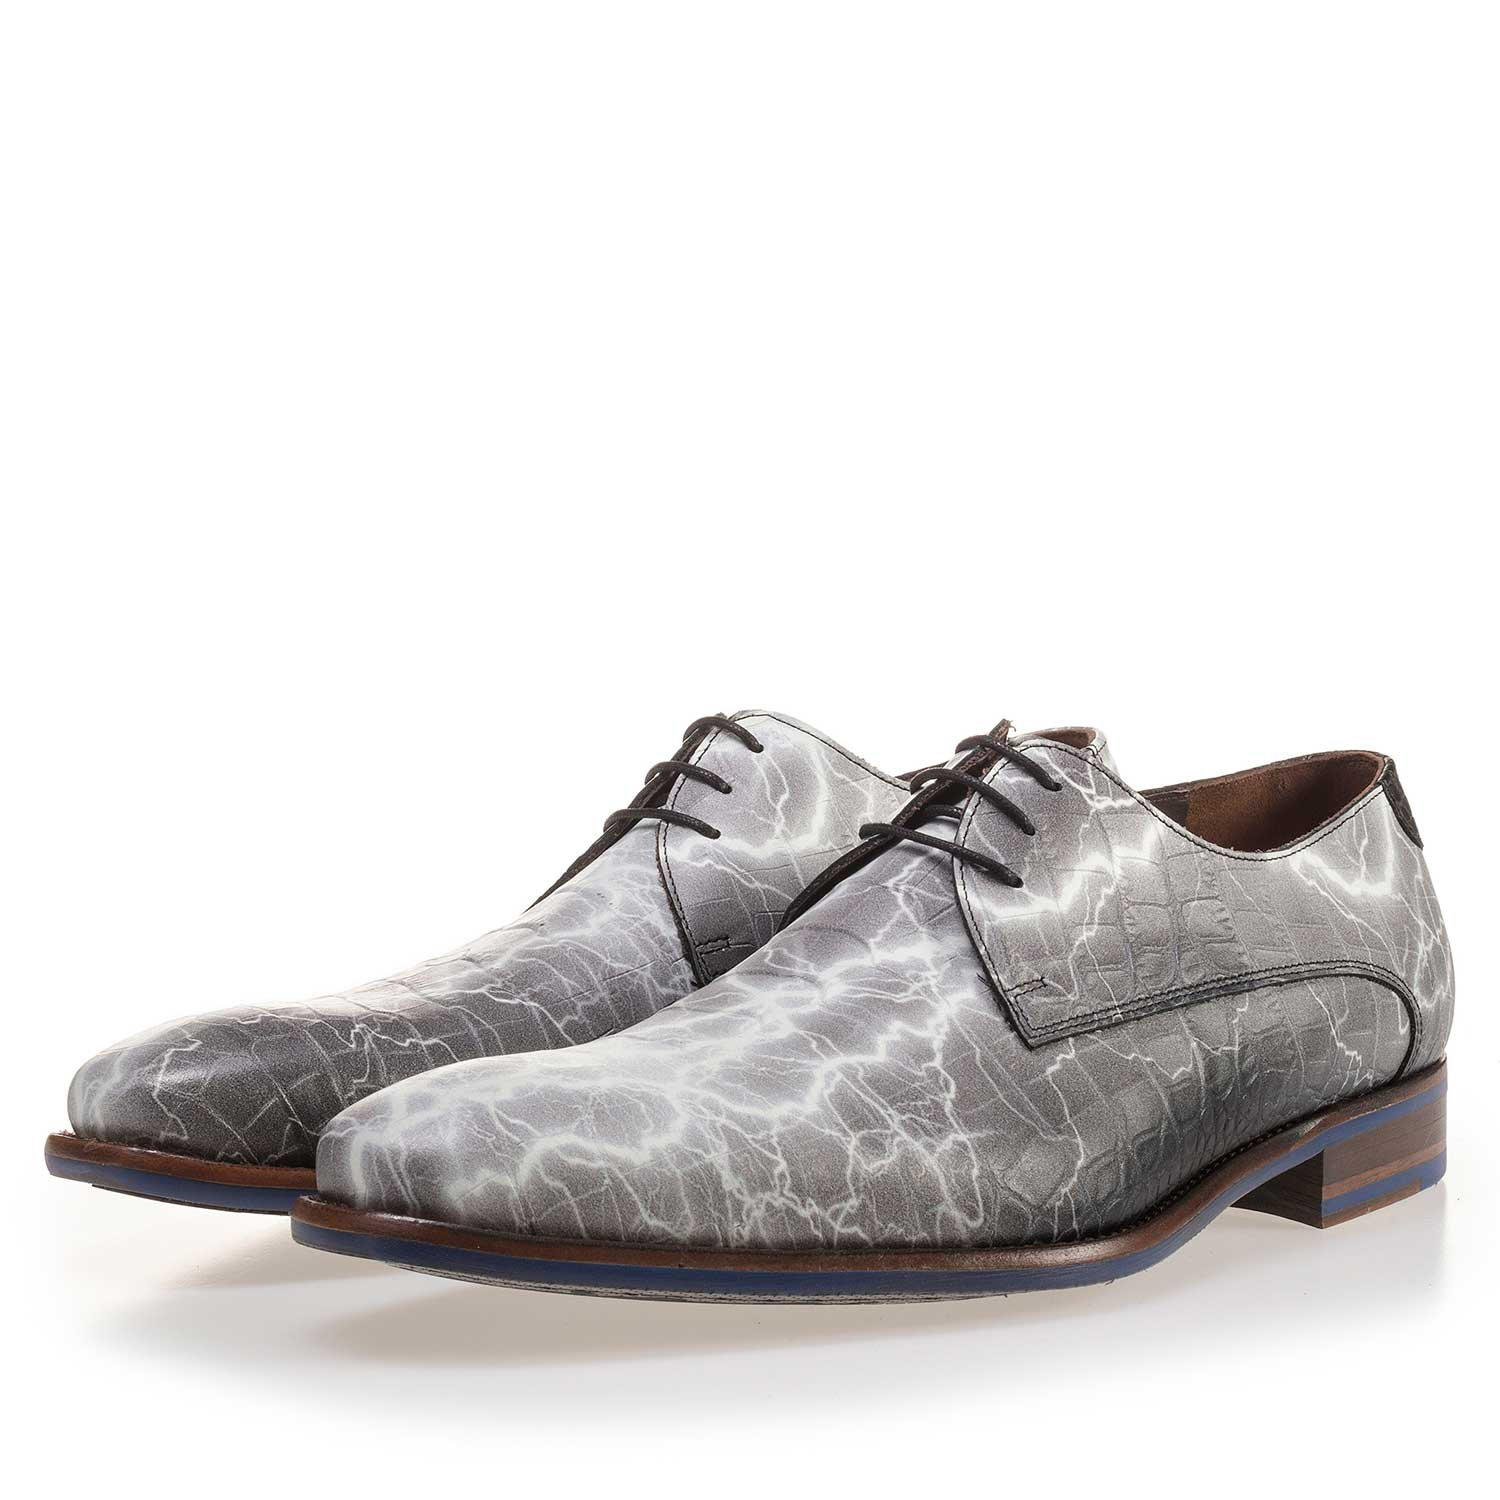 14267/02 - Premium grey printed leather lace shoe